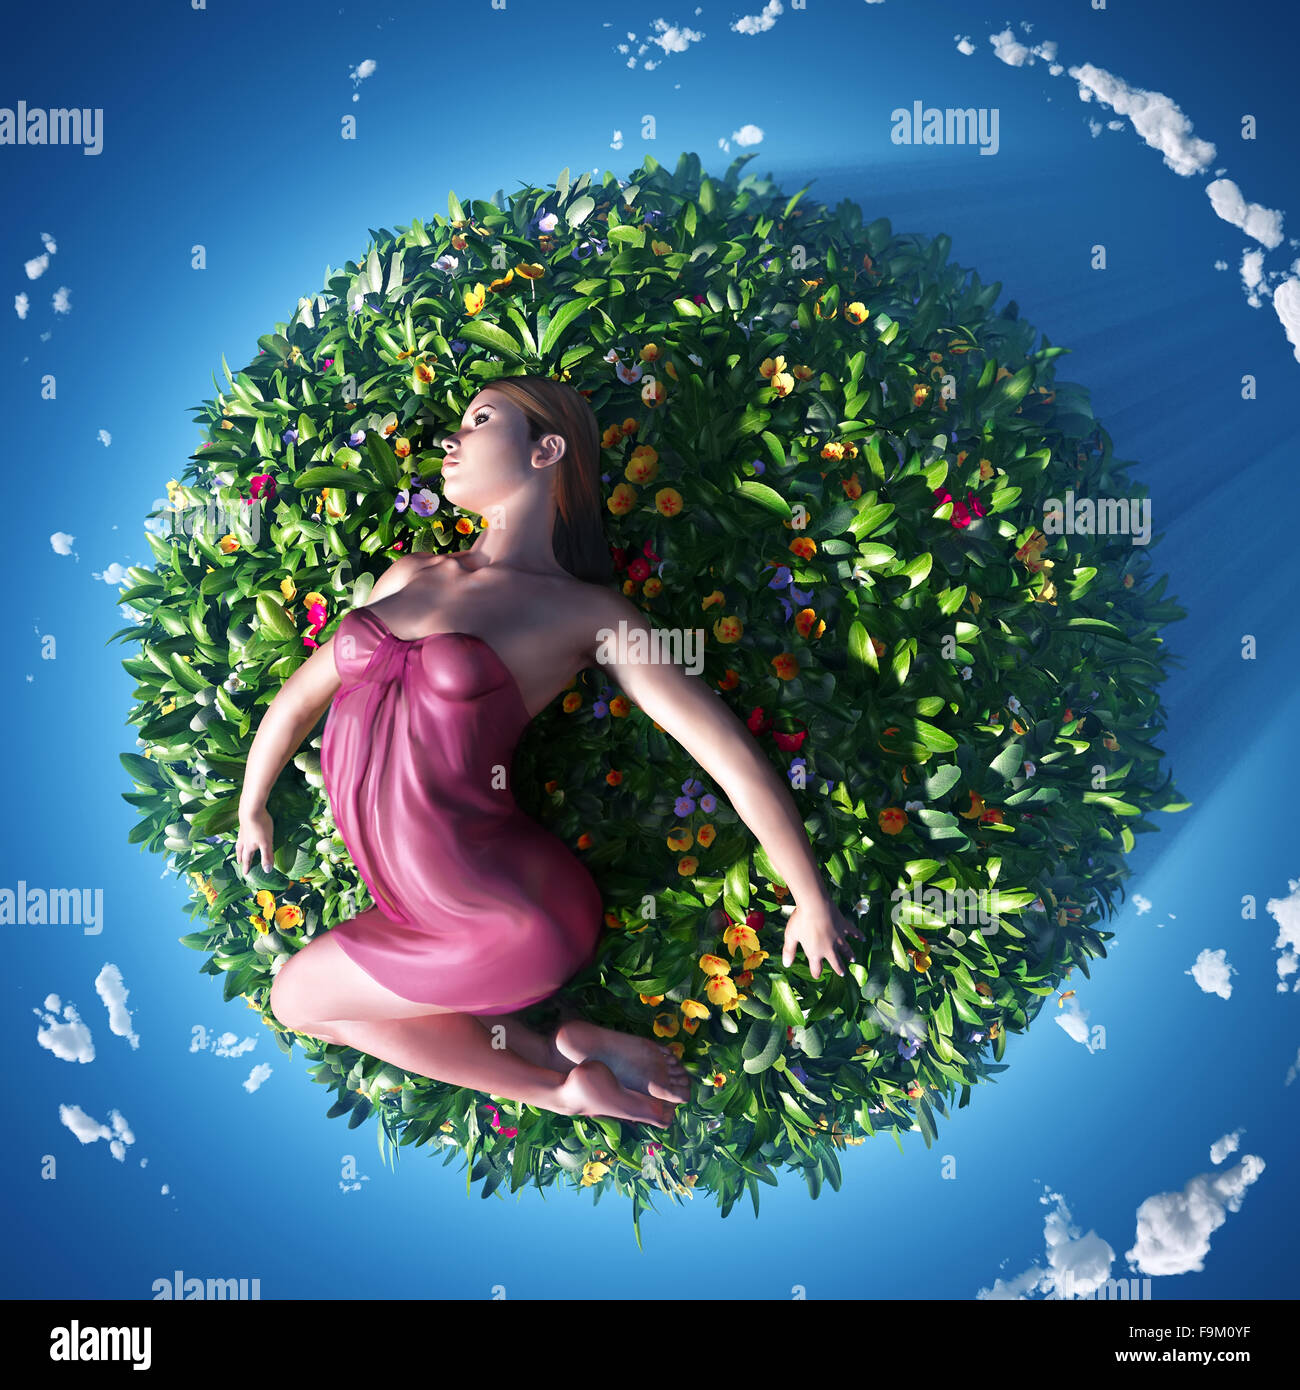 girl lying on the small planet - Stock Image